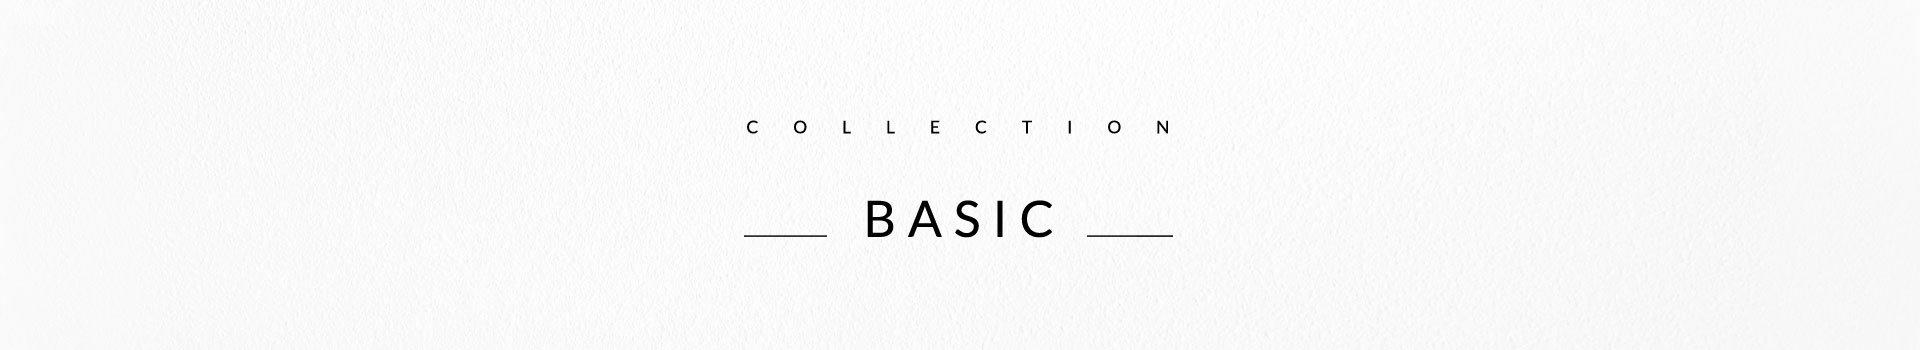 BASIC-COLLECTION